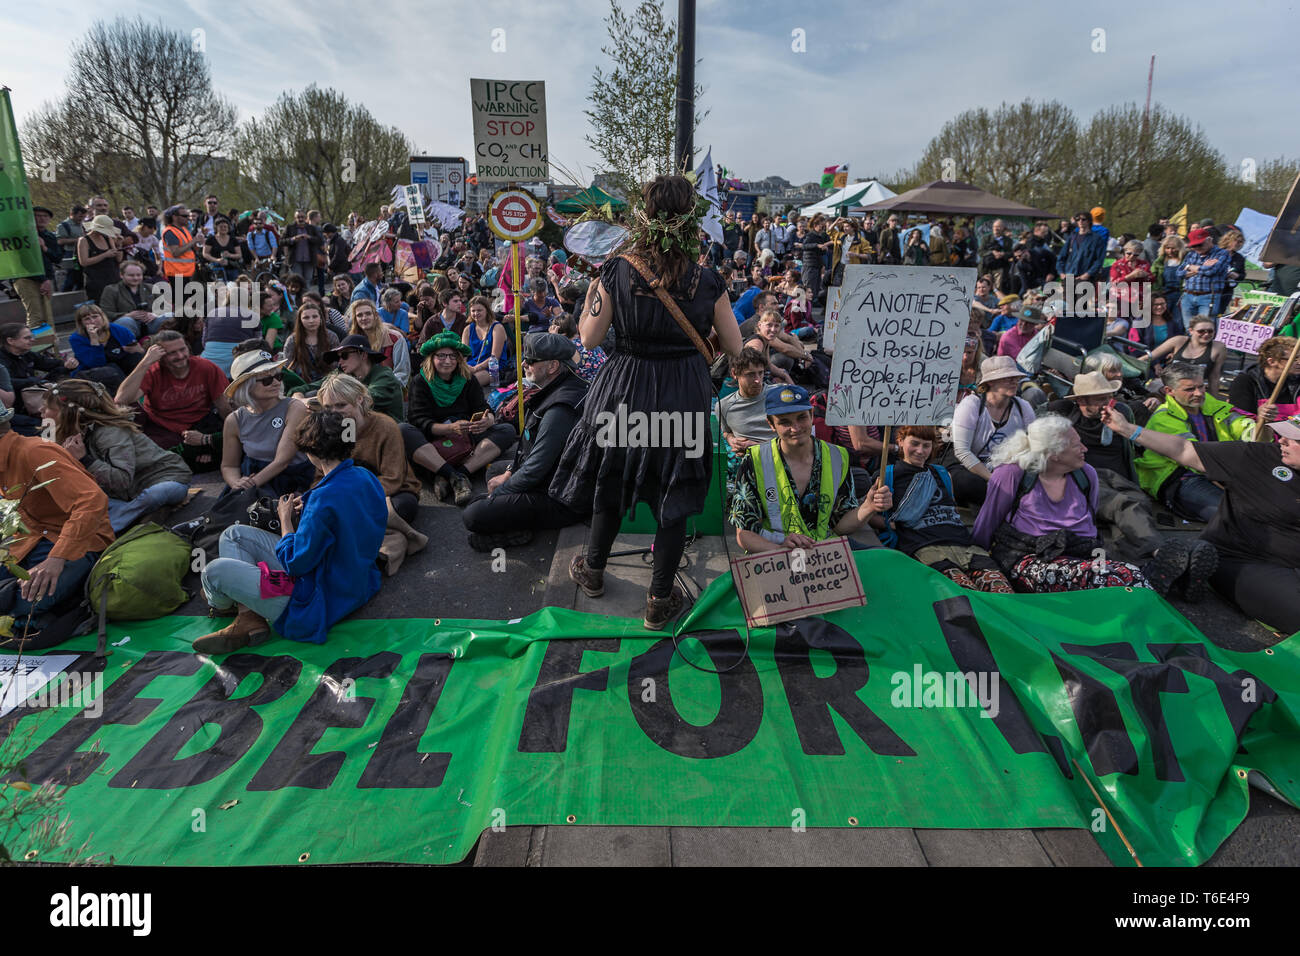 Extinction Rebellion activist seize Waterloo Bridge in London - Stock Image